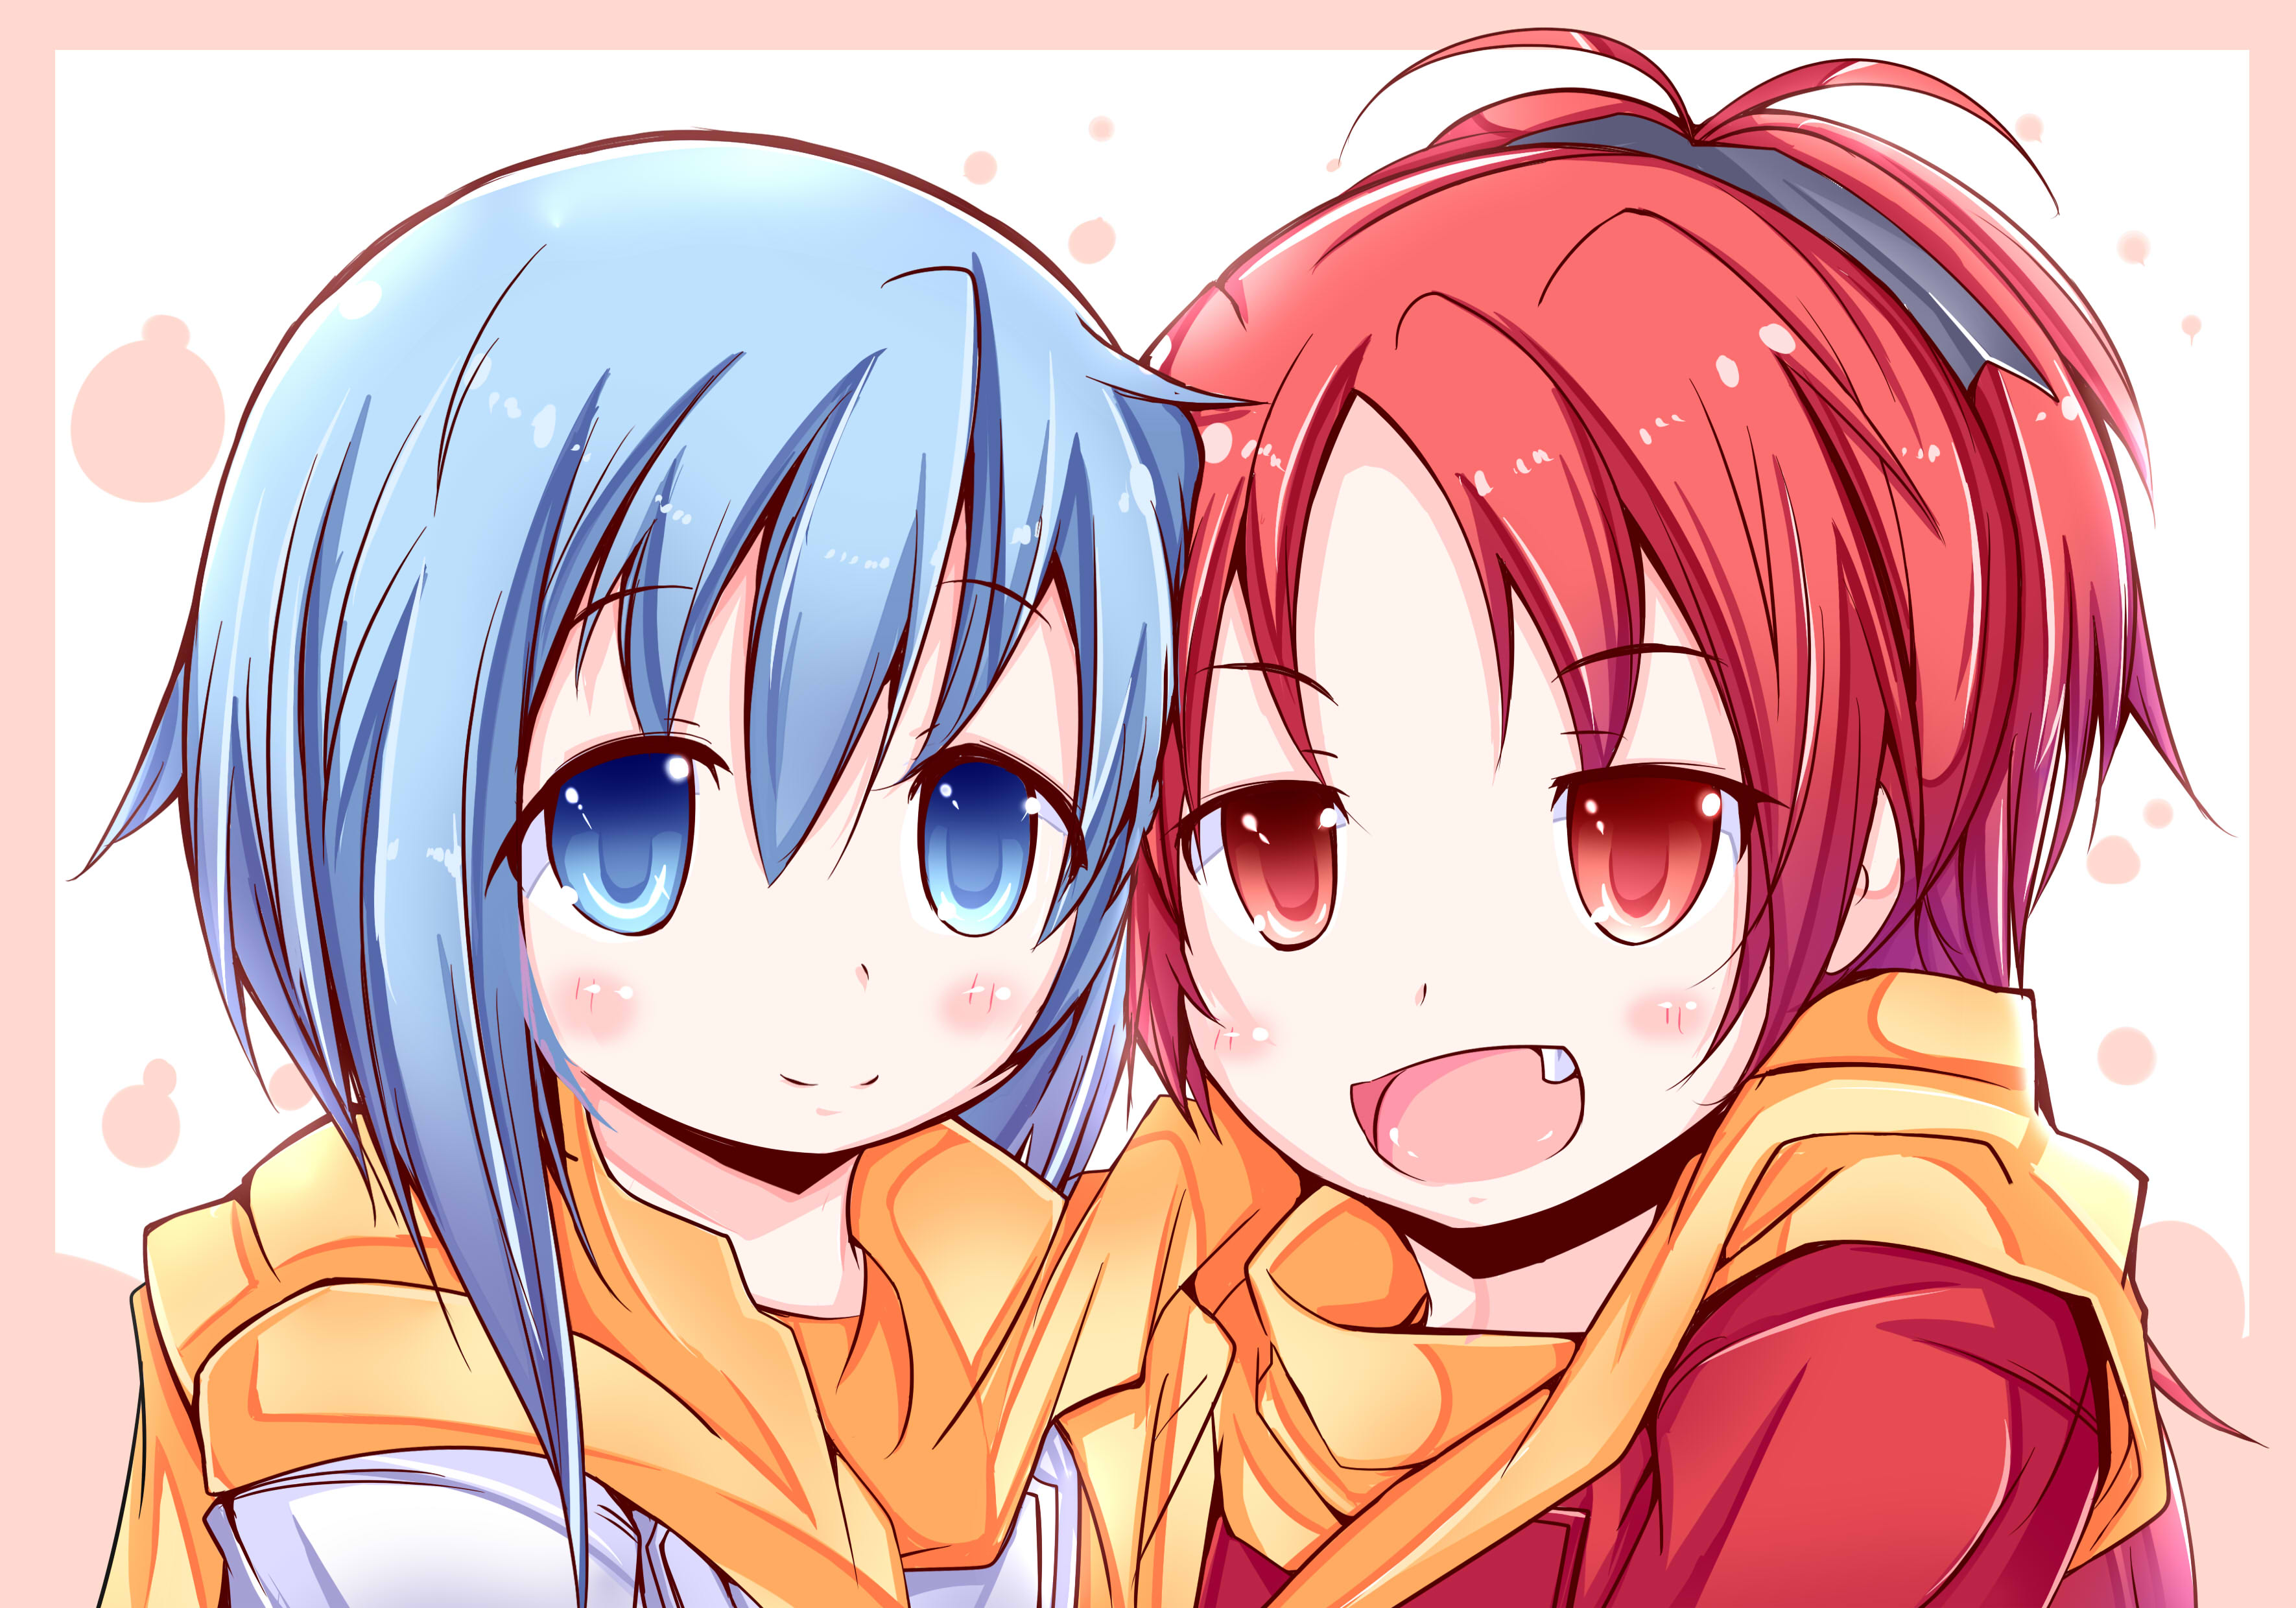 Adult Images Anime shemales doing females